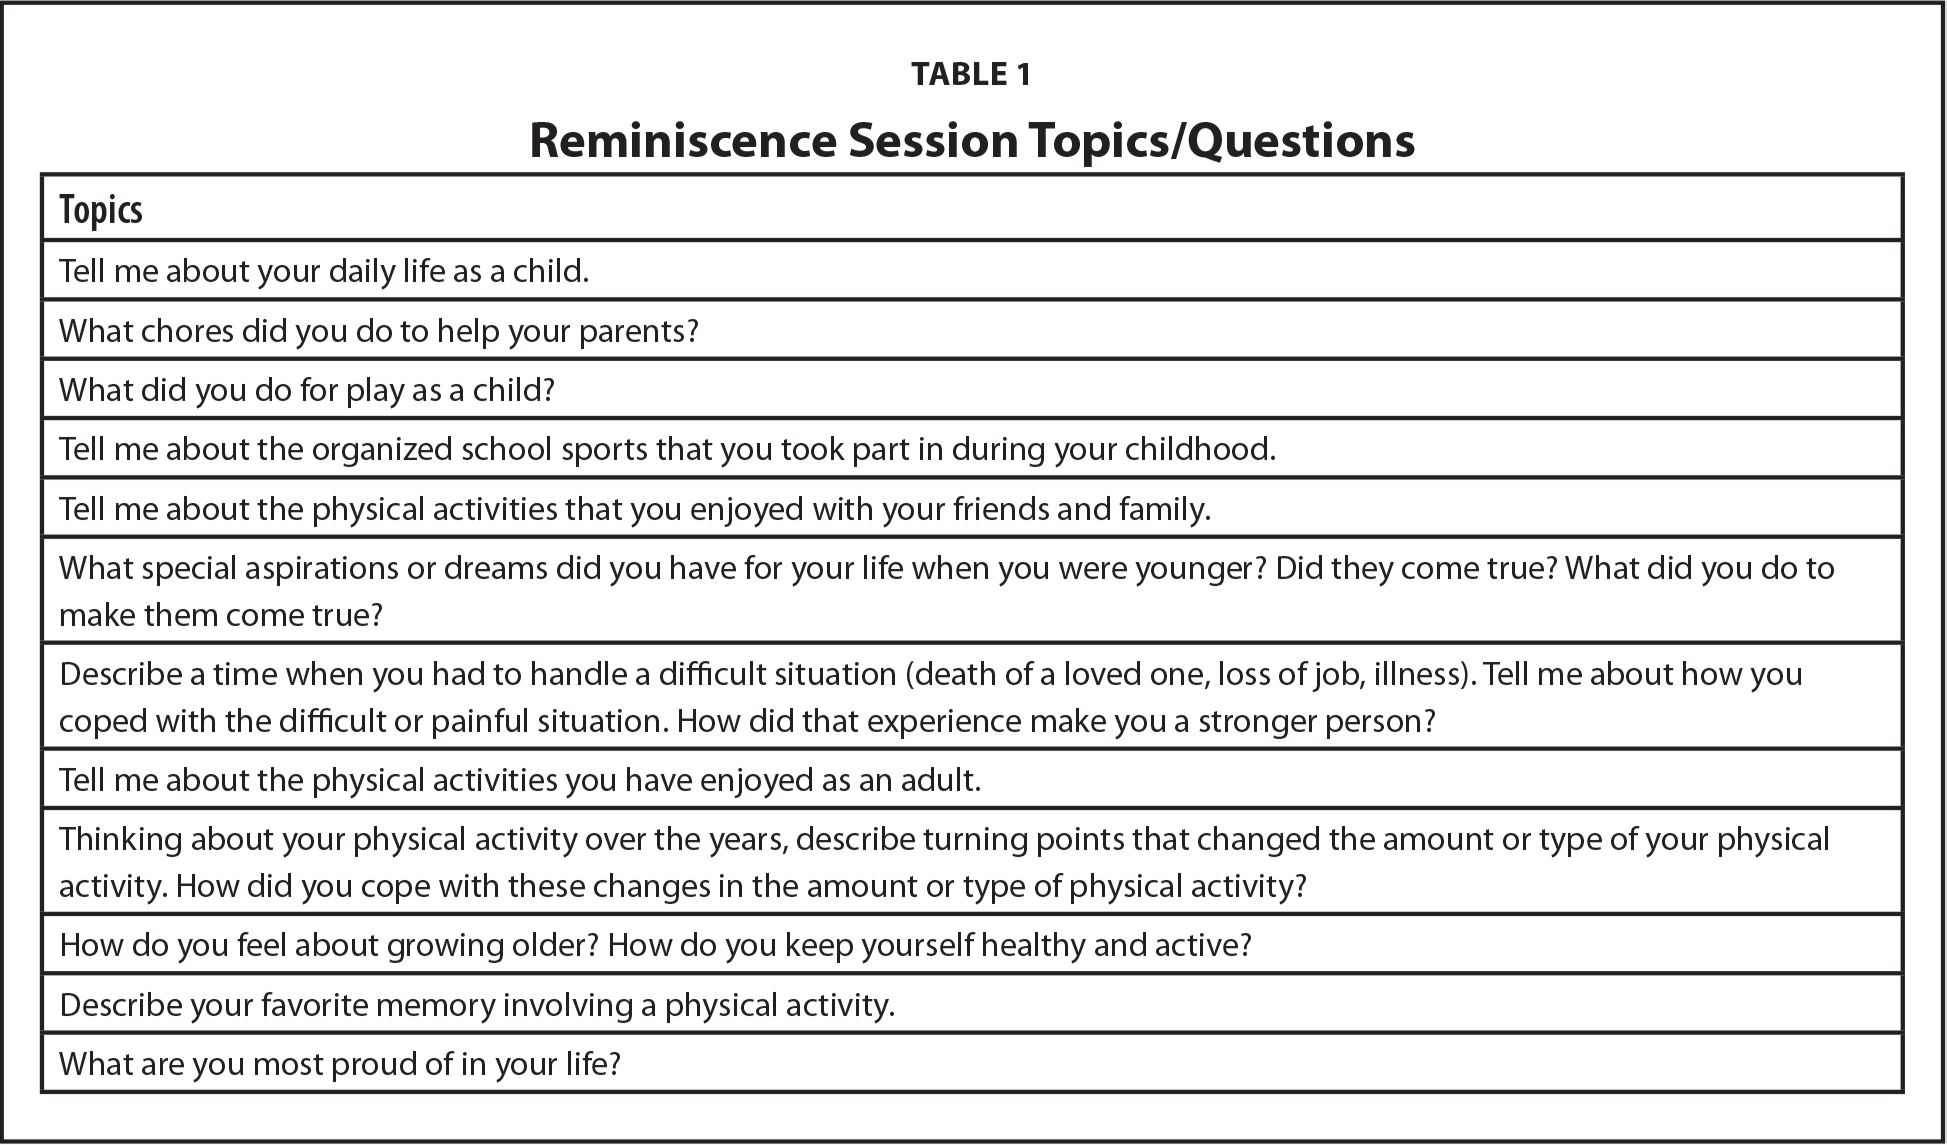 Reminiscence Session Topics/Questions